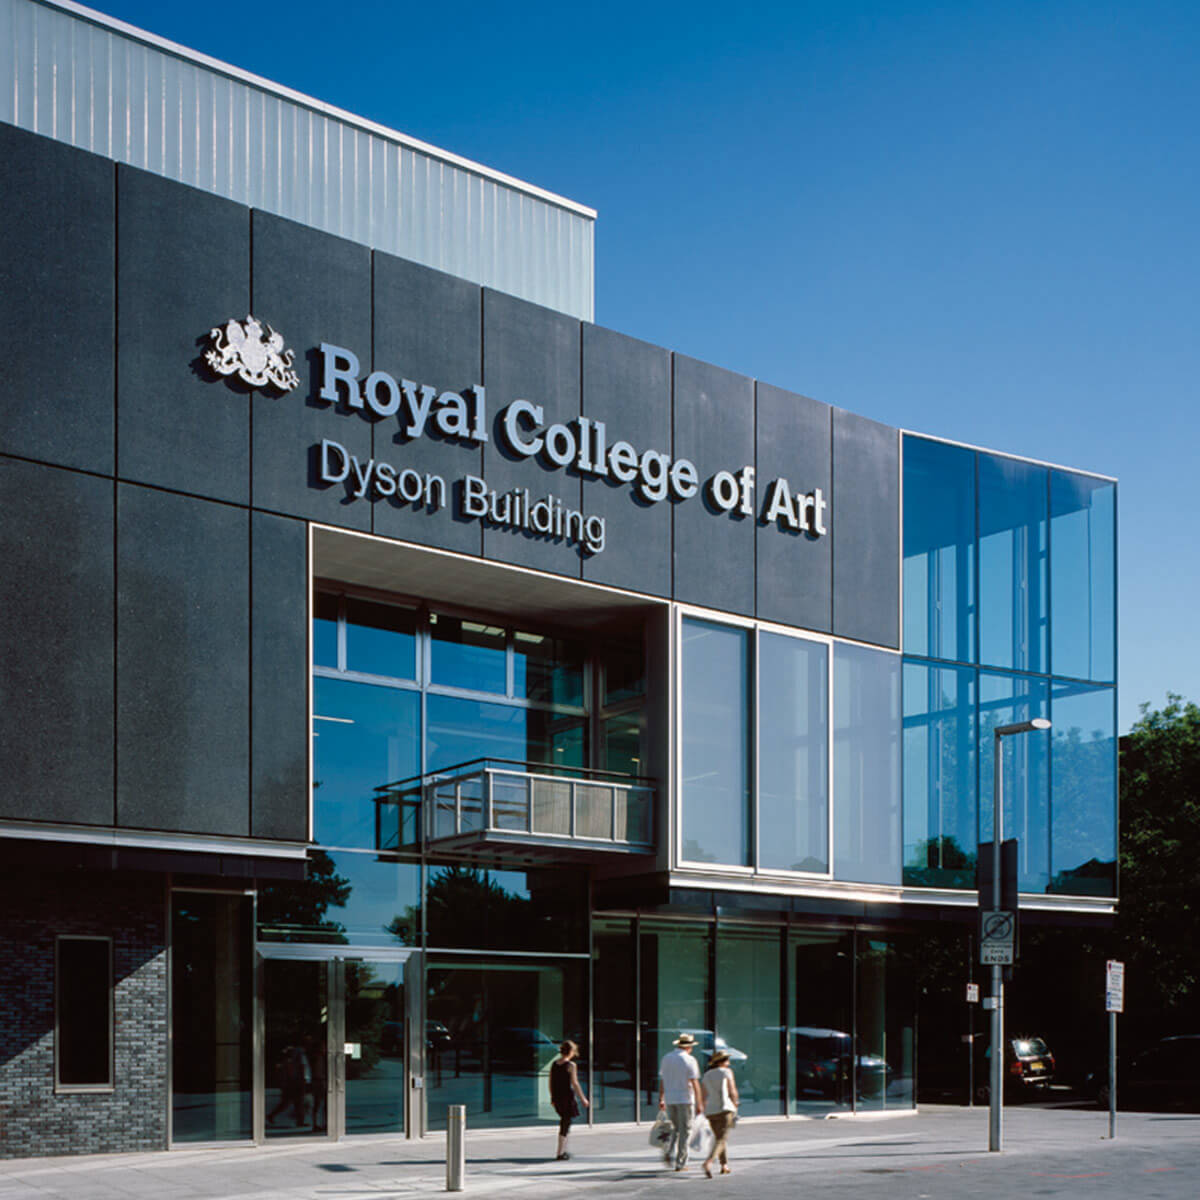 The Dyson Building at the Royal College of Art, UK.